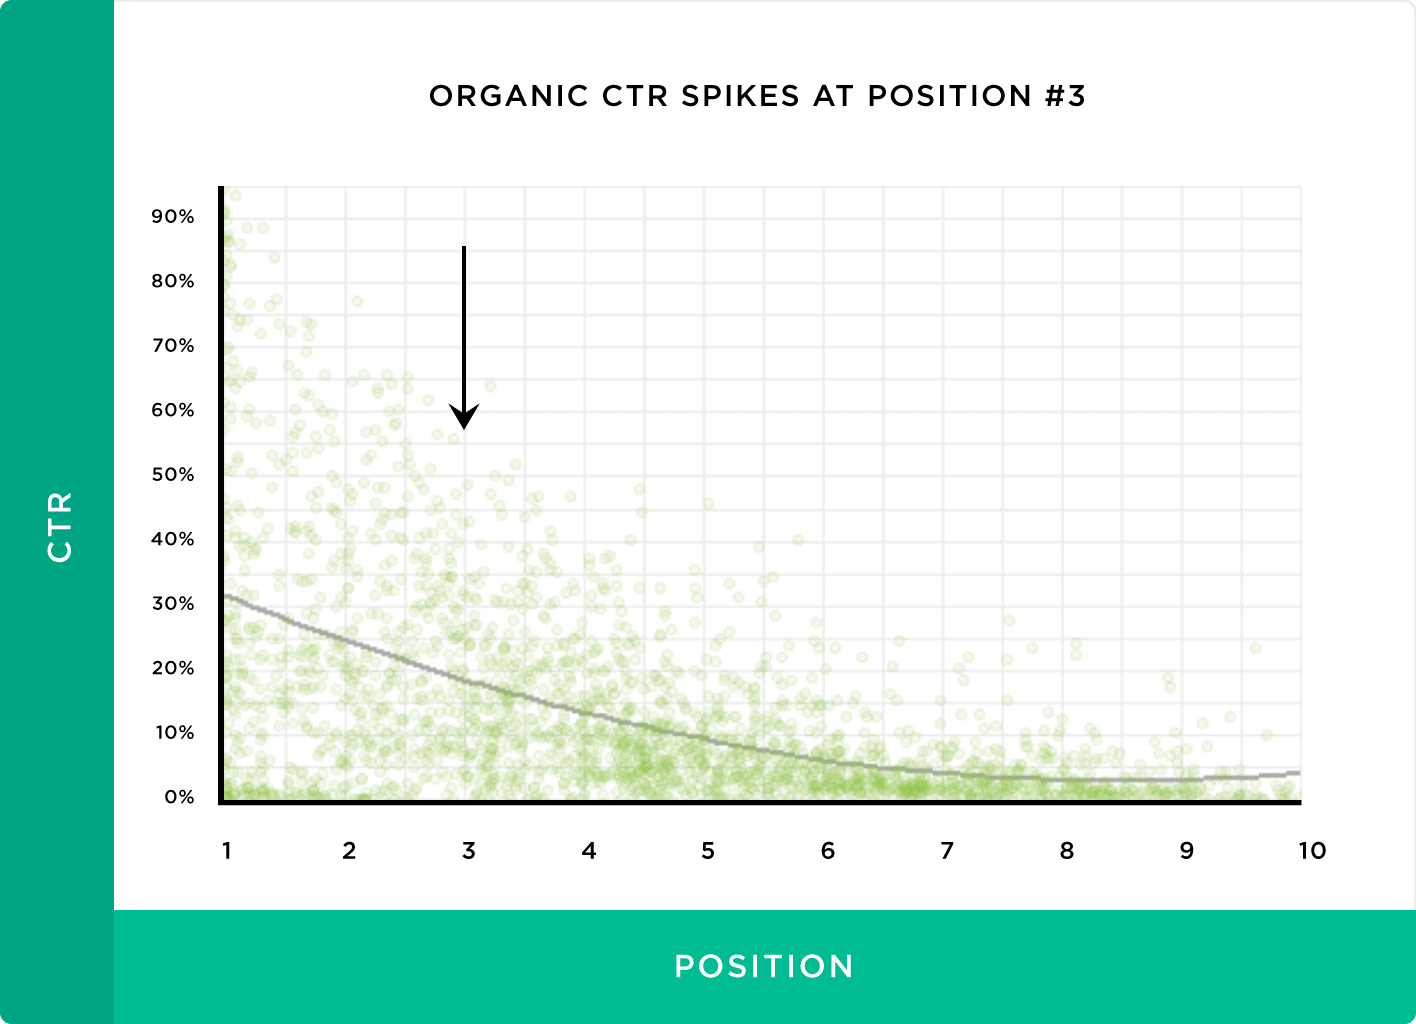 Organic CTR spikes at position #3